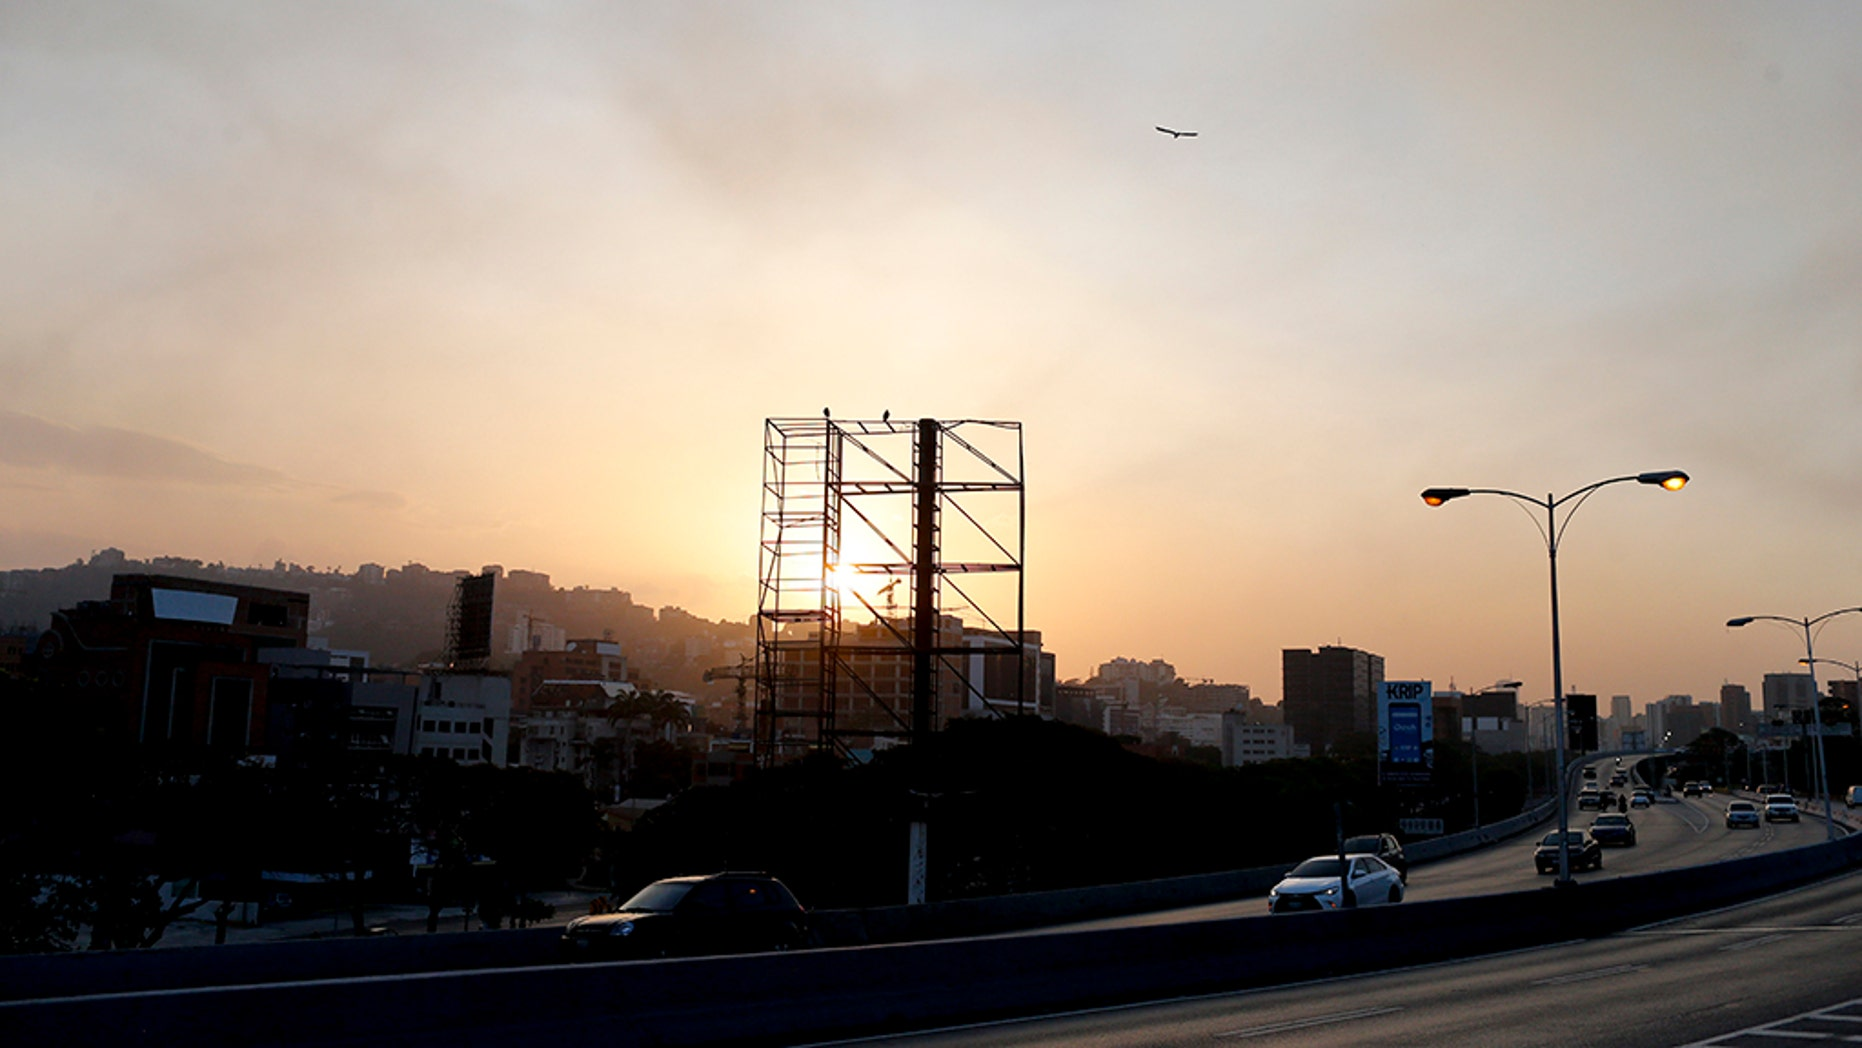 """A billboard stands empty above a highway without traffic, as the sun goes down in Caracas, Venezuela, on Monday, March 1<div class=""""e3lan e3lan-in-post1""""><script async src=""""//pagead2.googlesyndication.com/pagead/js/adsbygoogle.js""""></script> <!-- Text_Display_Responsive --> <ins class=""""adsbygoogle""""      style=""""display:block""""      data-ad-client=""""ca-pub-6192903739091894""""      data-ad-slot=""""3136787391""""      data-ad-format=""""auto""""      data-full-width-responsive=""""true""""></ins> <script> (adsbygoogle = window.adsbygoogle 